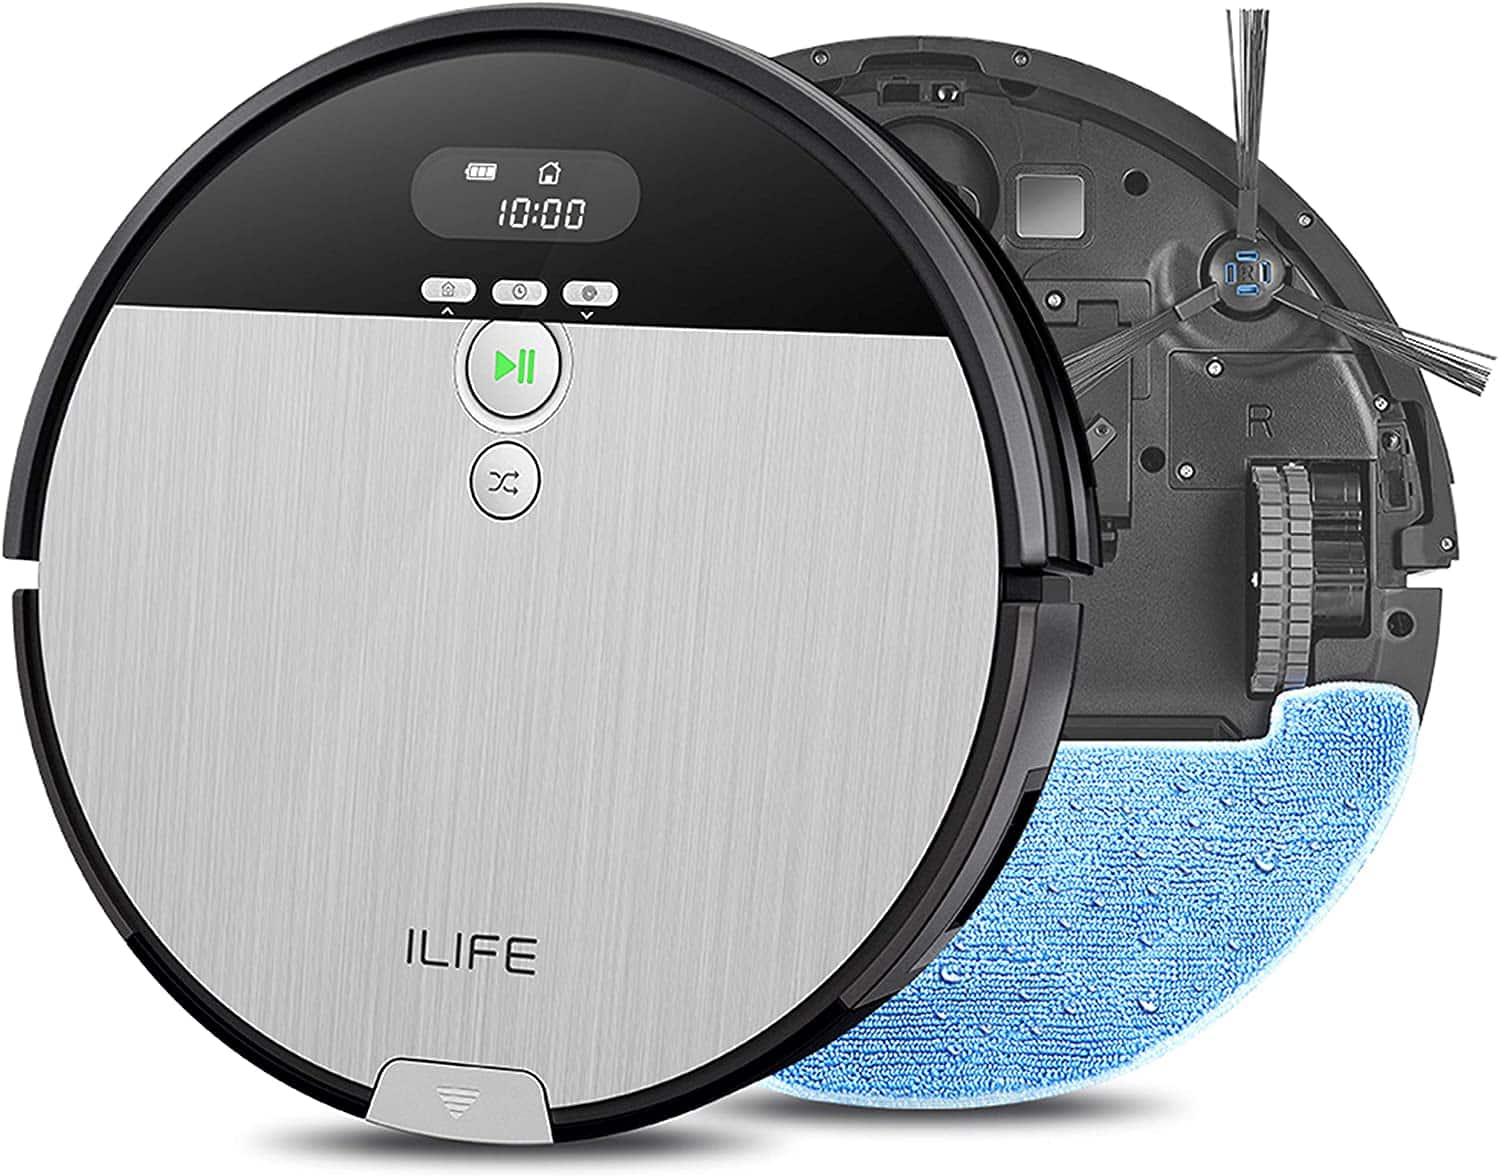 ILIFE V8s, 2-in-1 Robot Vacuum and Mop, Big 750ml Dustbin,Enhanced Suction Inlet,Zigzag Cleaning Path,Ideal for Pet Hair,Self-Charging Robotic Vacuum, LCD Display,Schedul - $169